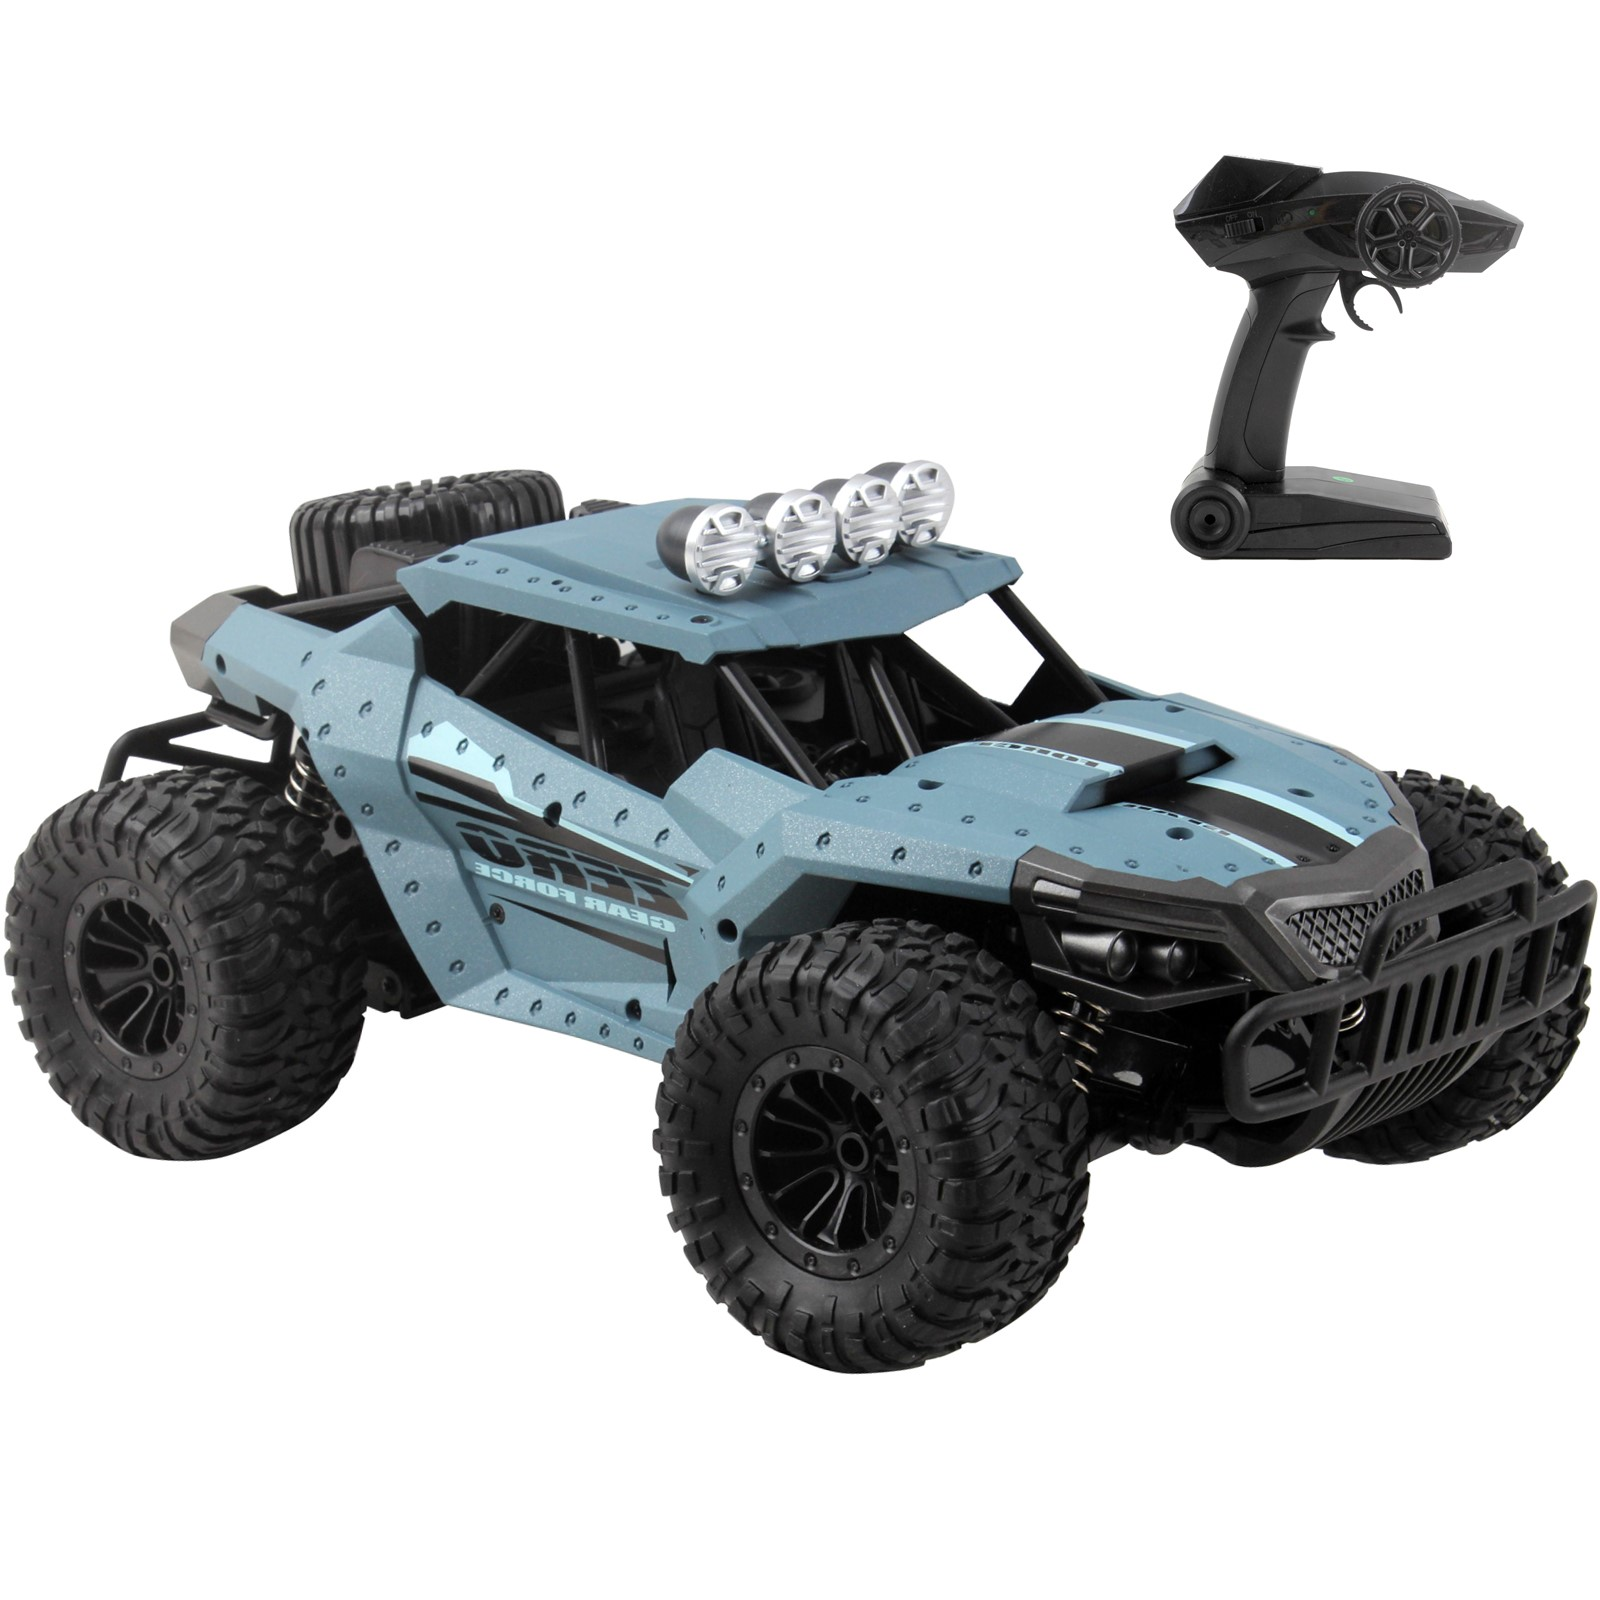 Vokodo RC Race Truck 12.6 1:16 Scale 2.4Ghz Electric High Speed Motor 20km/h Rechargeable Radio Remote Control Kids Off-Road Big Tire Car Ready To Run RTR Toy Vehicle Great Gift For Children Boy Girl